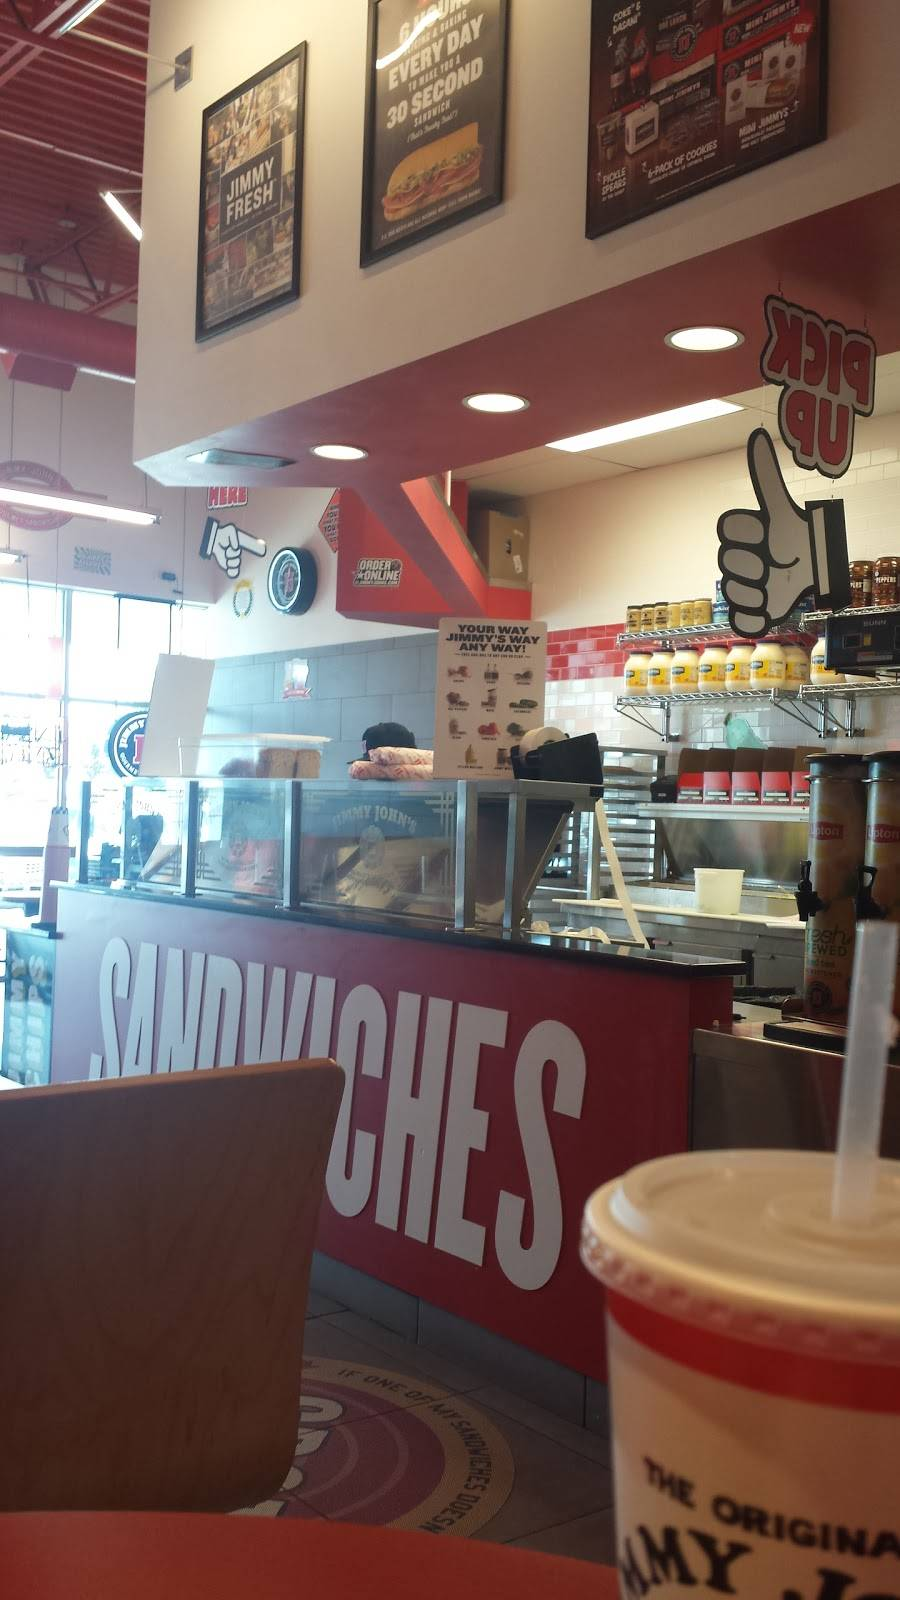 Jimmy Johns | meal delivery | 9168 S Yale Ave Ste. 110, Tulsa, OK 74137, USA | 9185517211 OR +1 918-551-7211